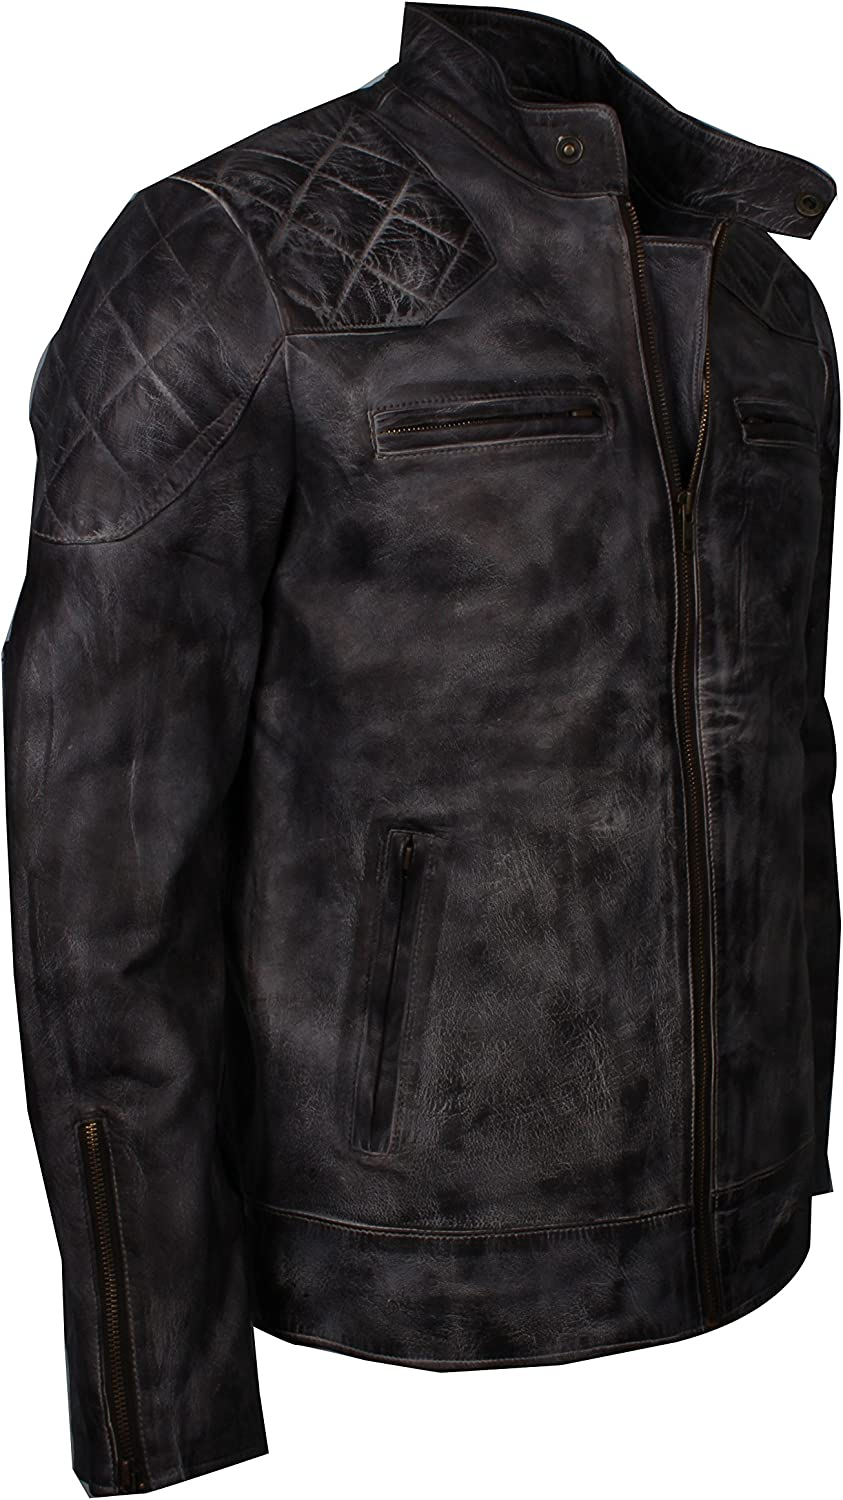 LeatherHits Mens David Beckham Genuine Leather Jacket